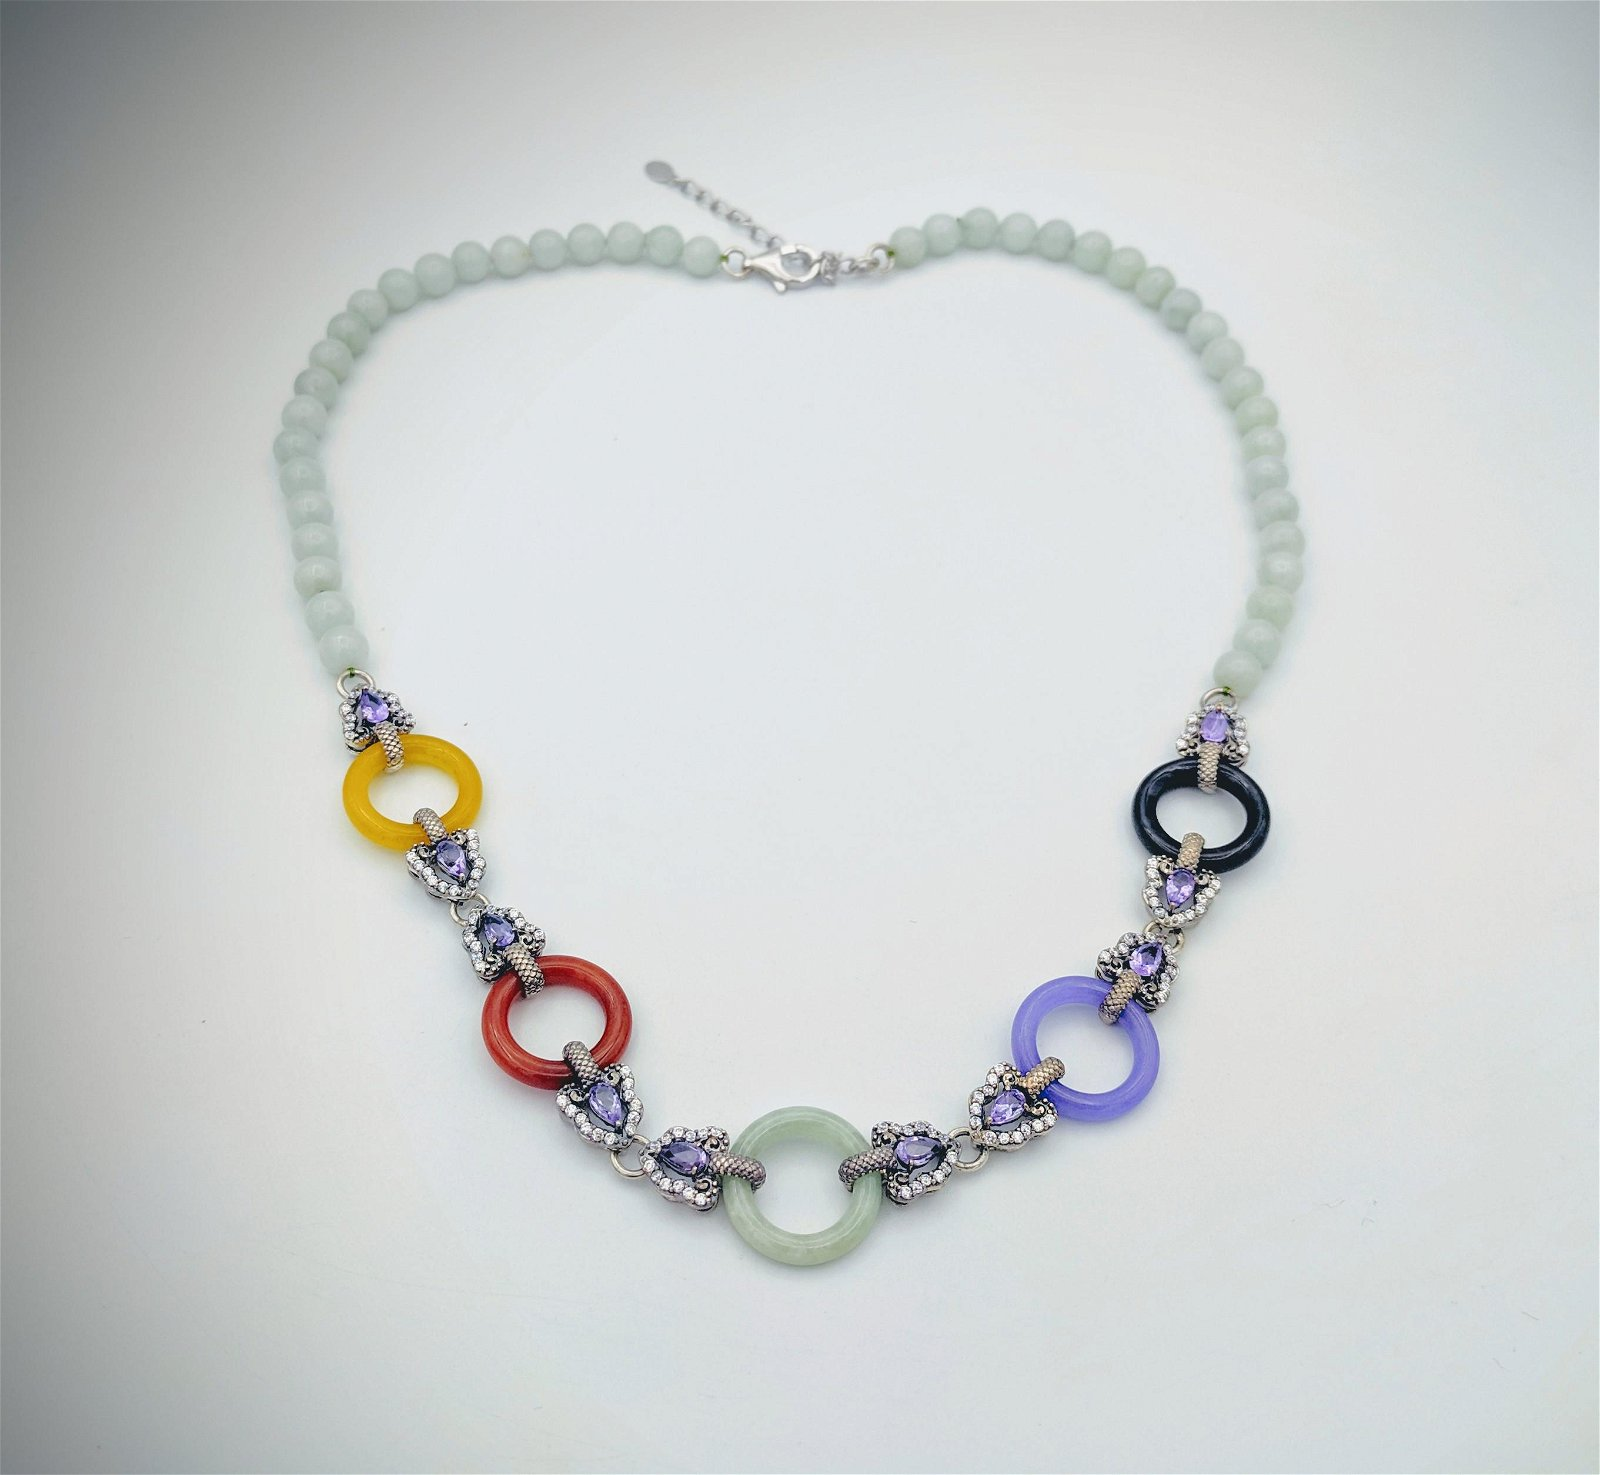 Beaded Jade Necklace w Multicolored Jade's, Amethyst &